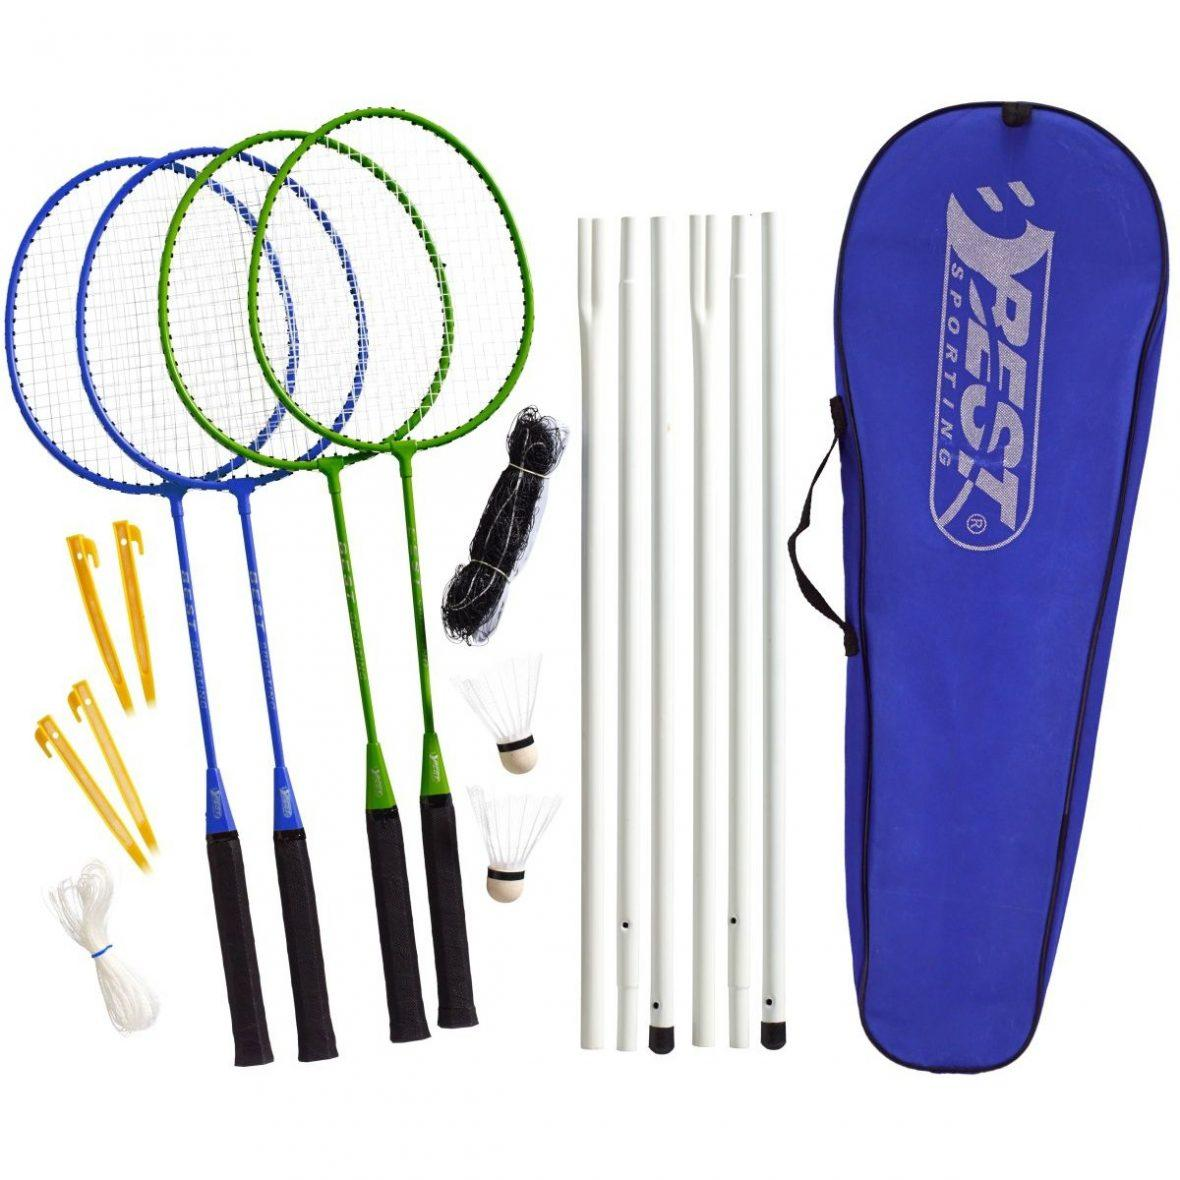 Mega badminton set, 5v1